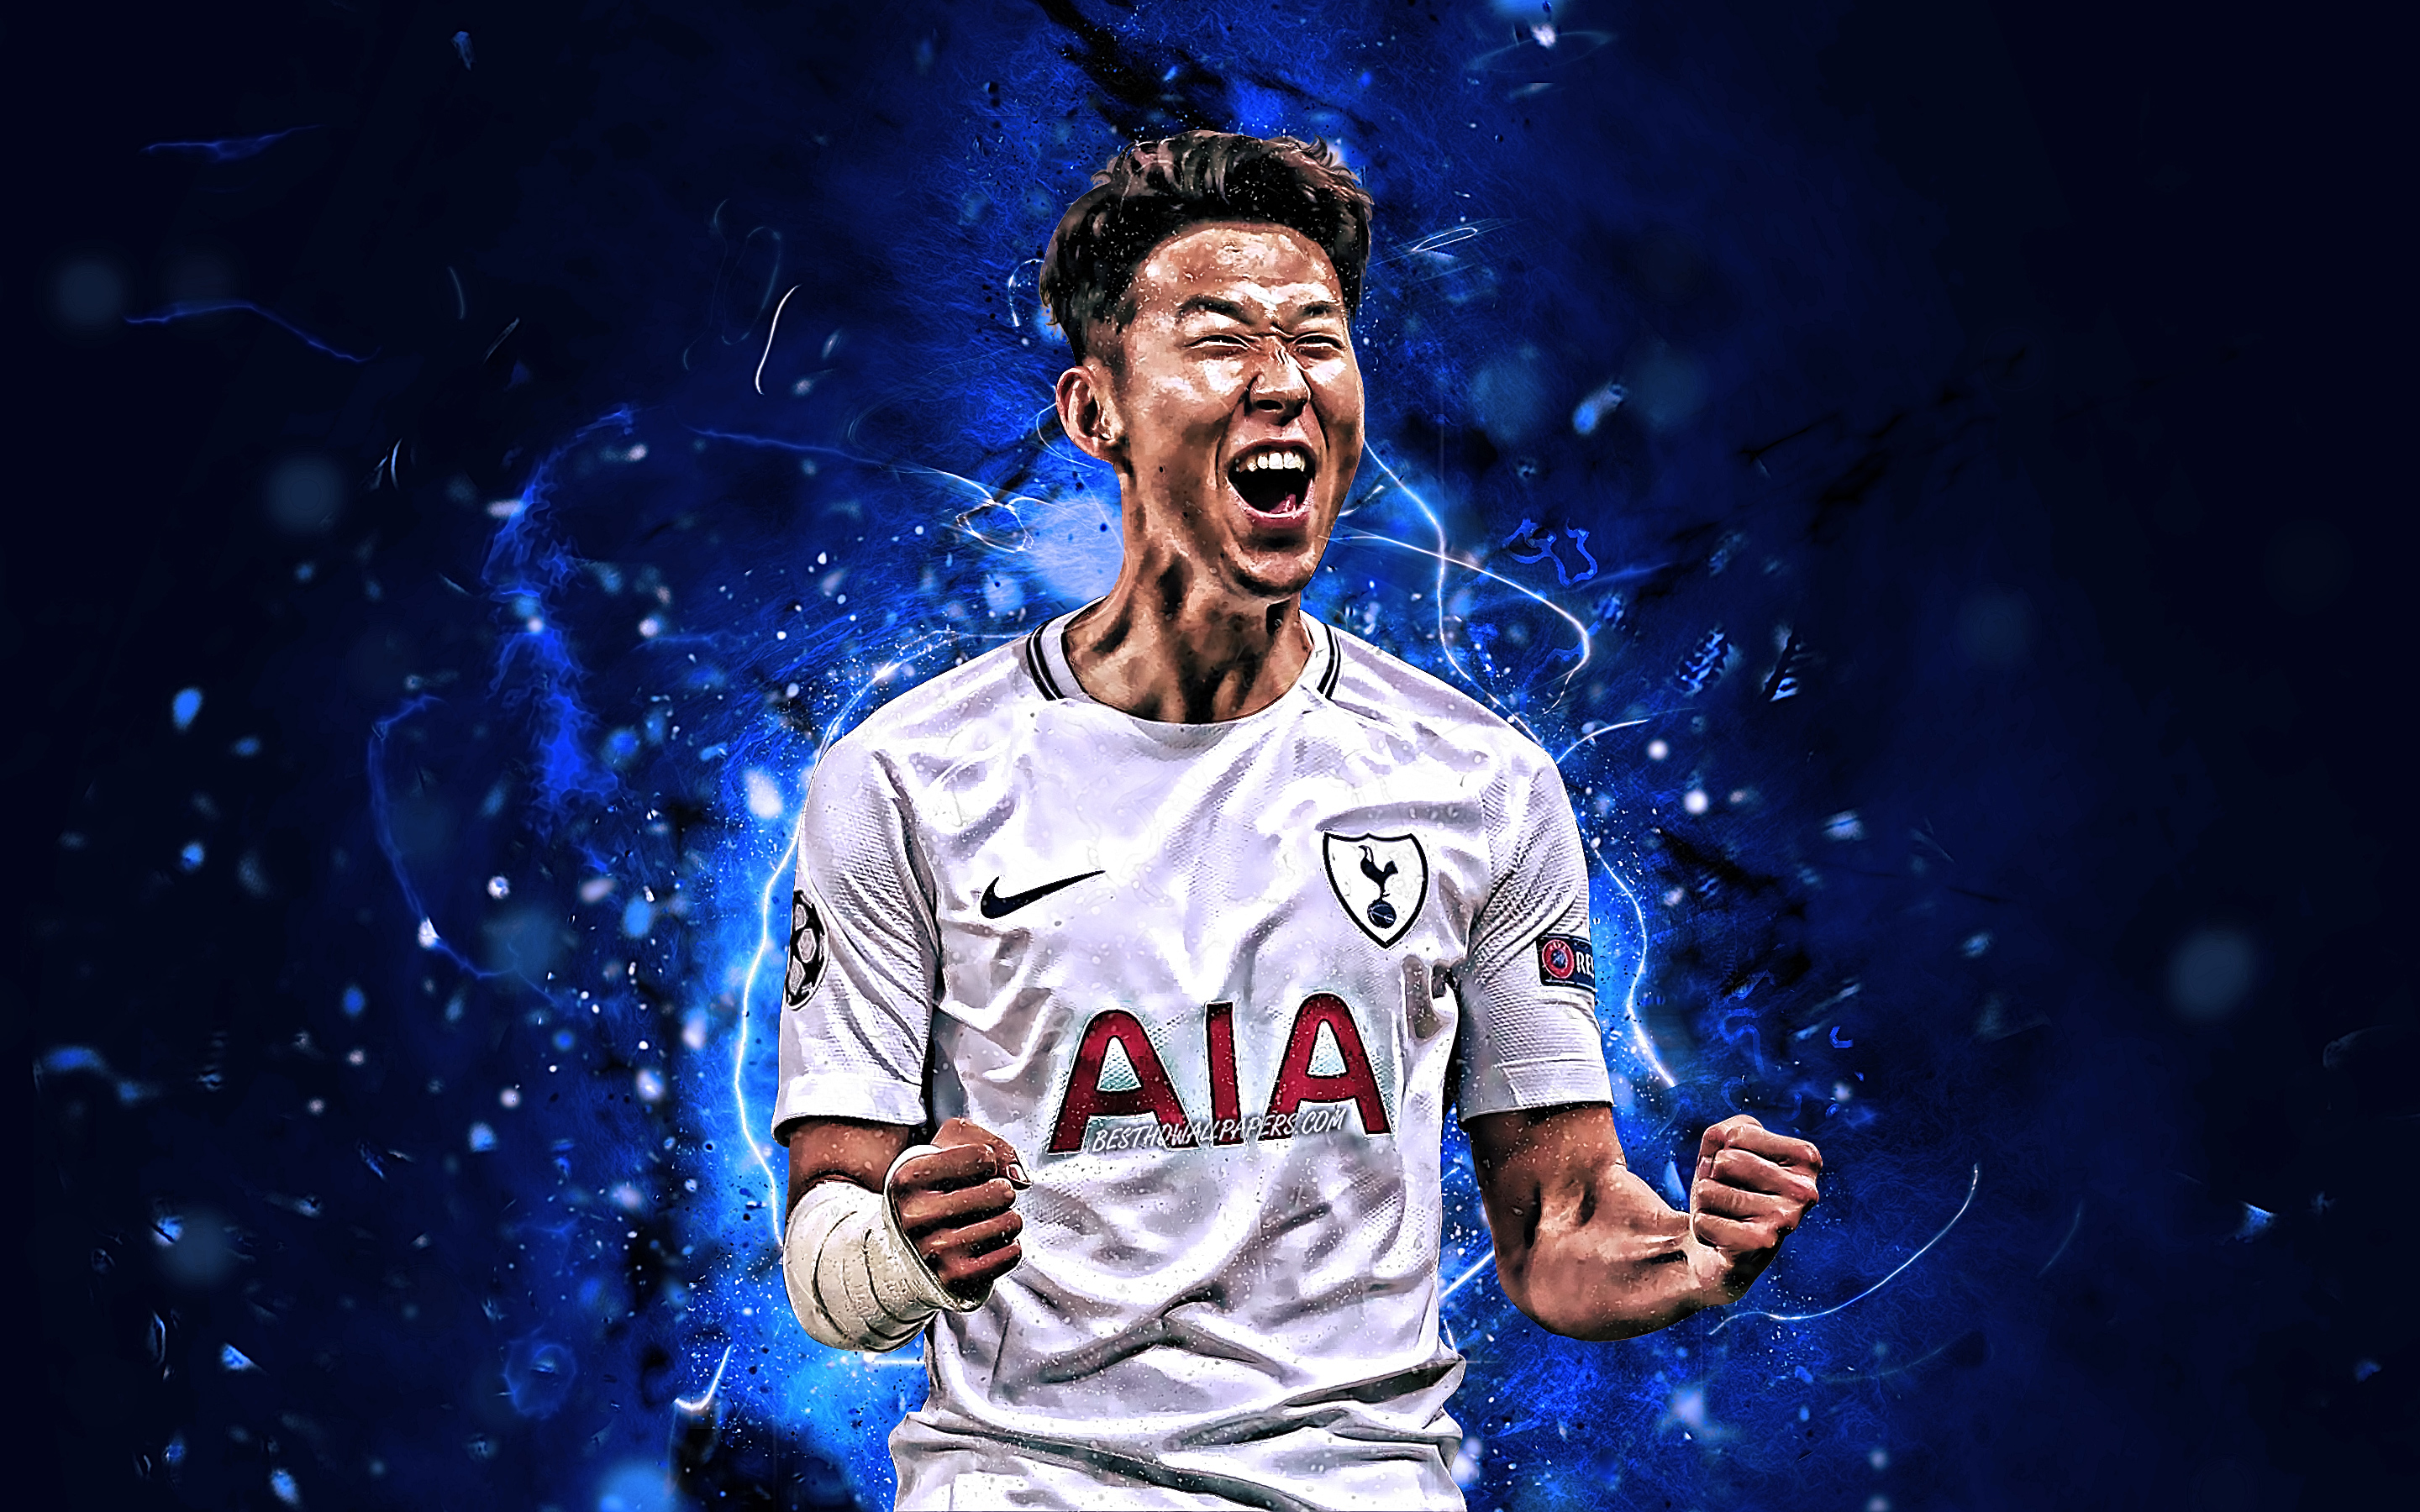 Son Heung Min Tottenham Hotspur Fc South Korean Footballers Heung Min Son Wallpaper Hd 2880x1800 Wallpaper Teahub Io